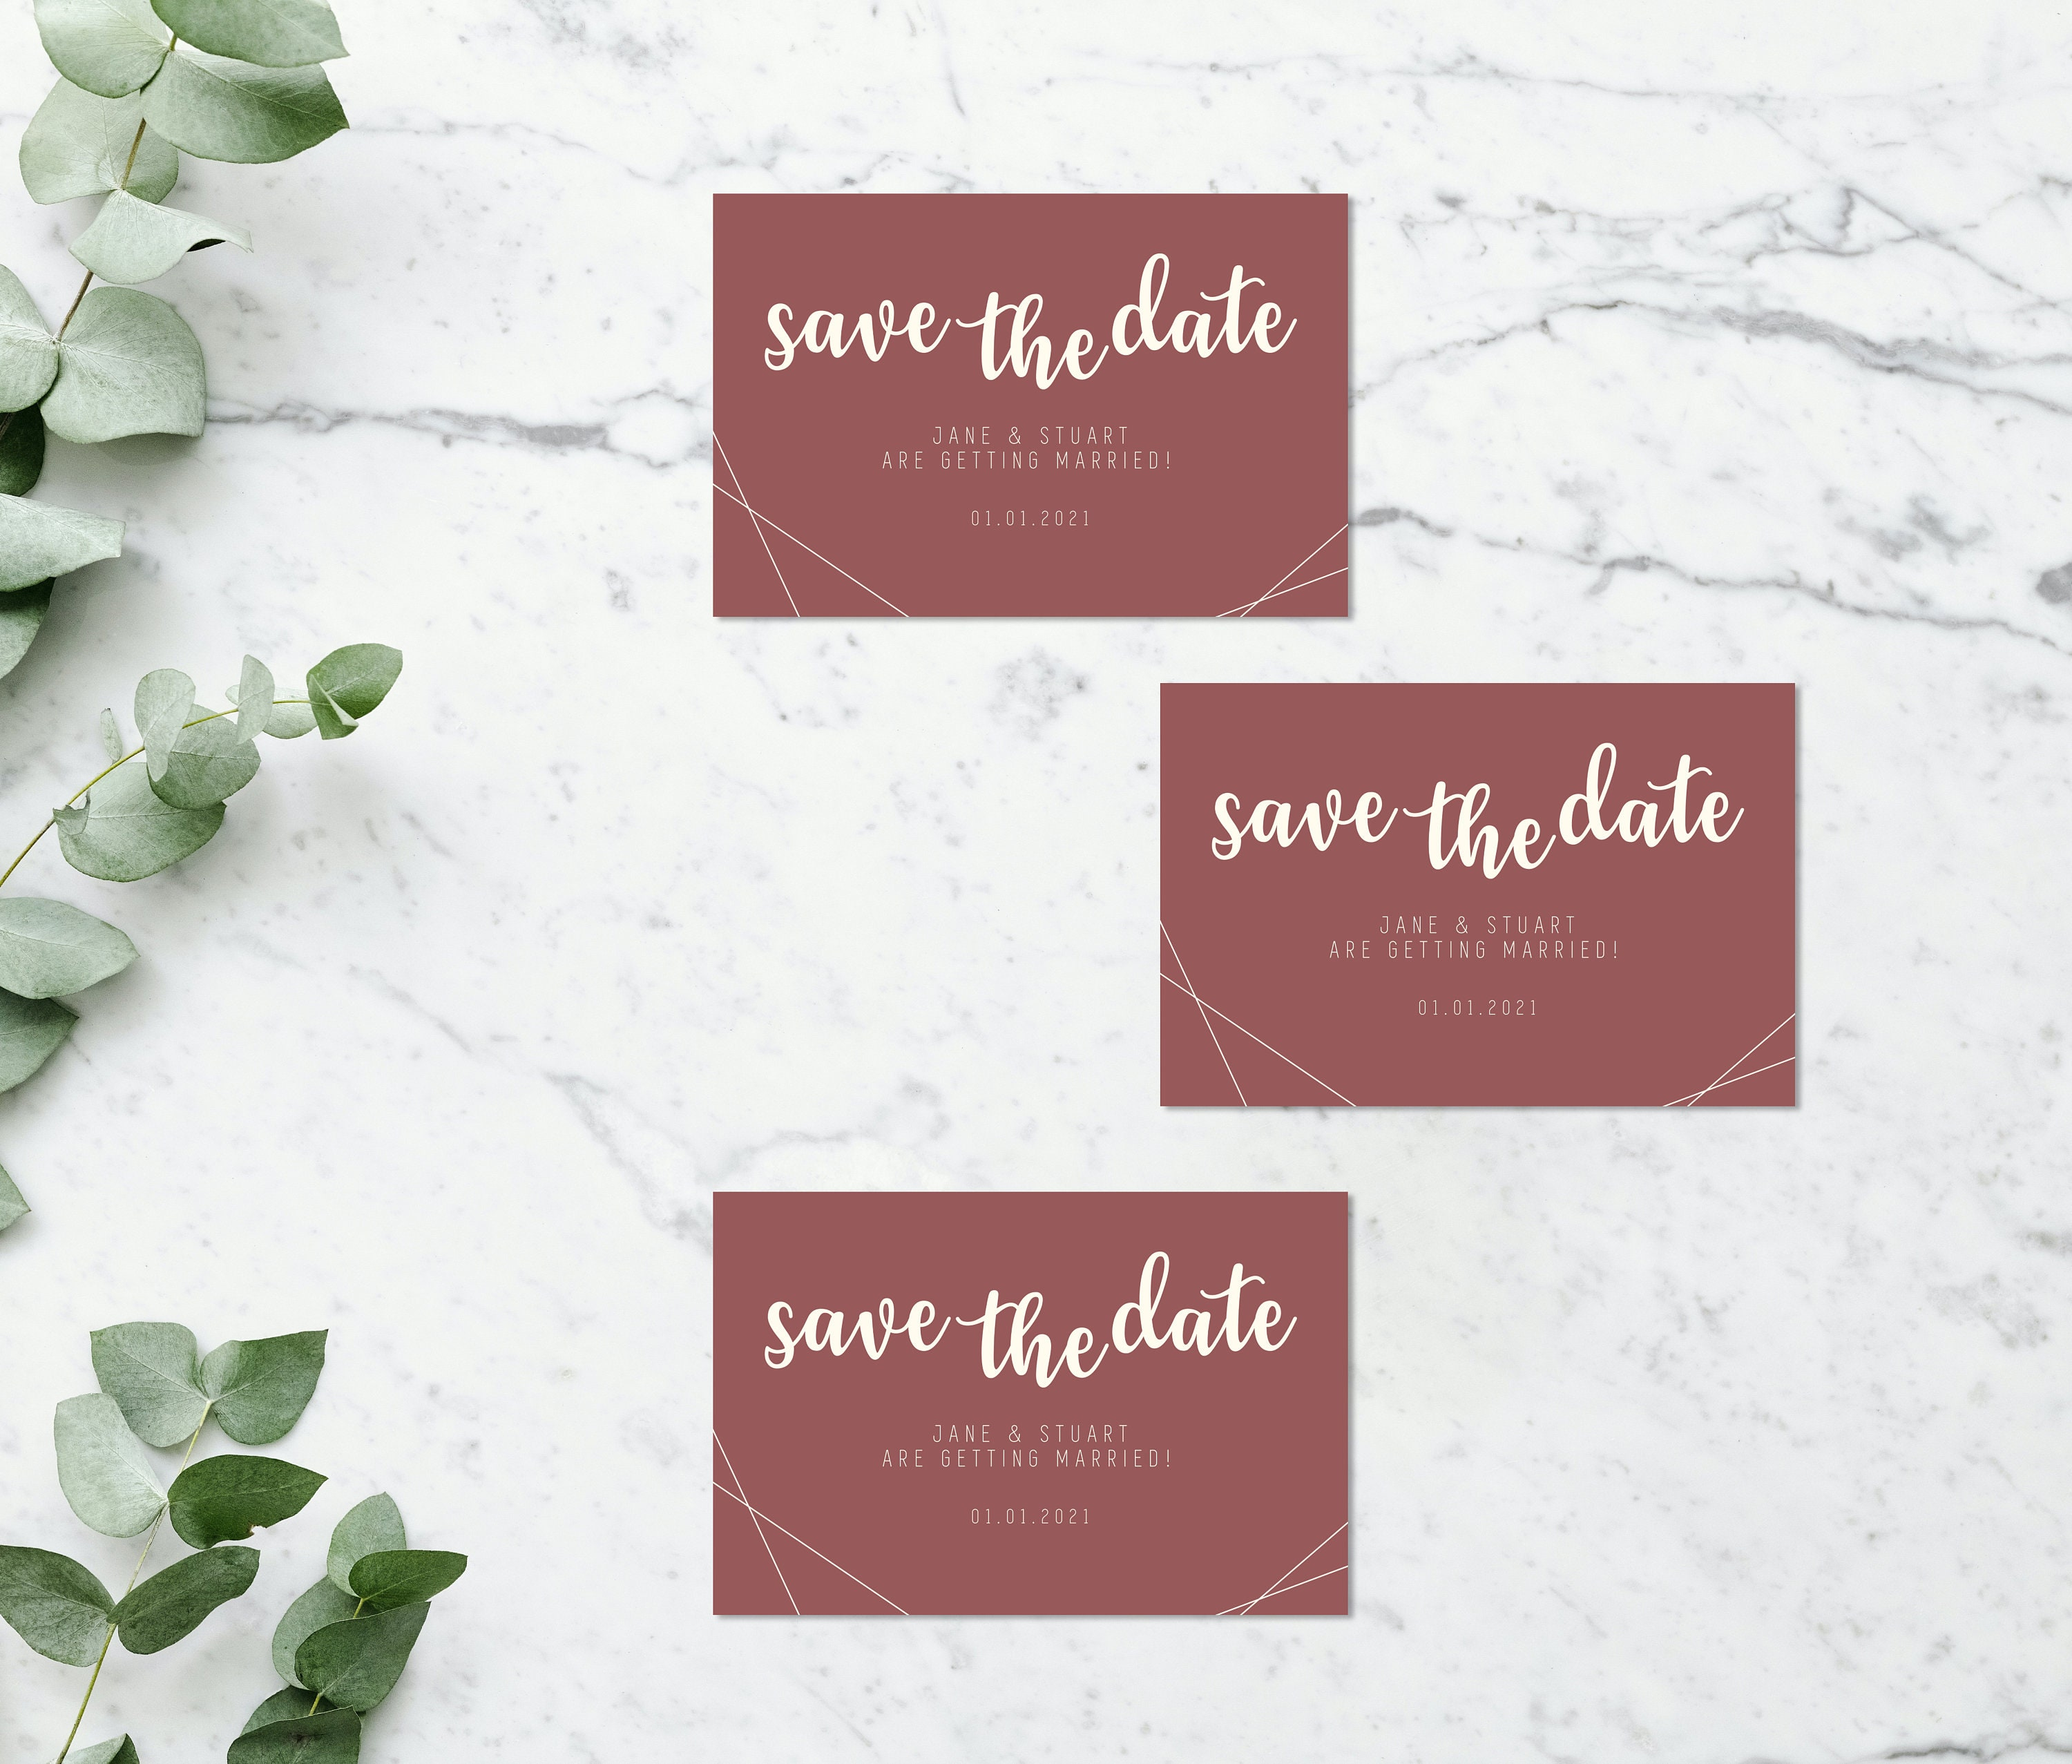 Flat lay photograph of 3 wedding save the date cards and white envelope. The design of each is mostly pink card with cream colour details.